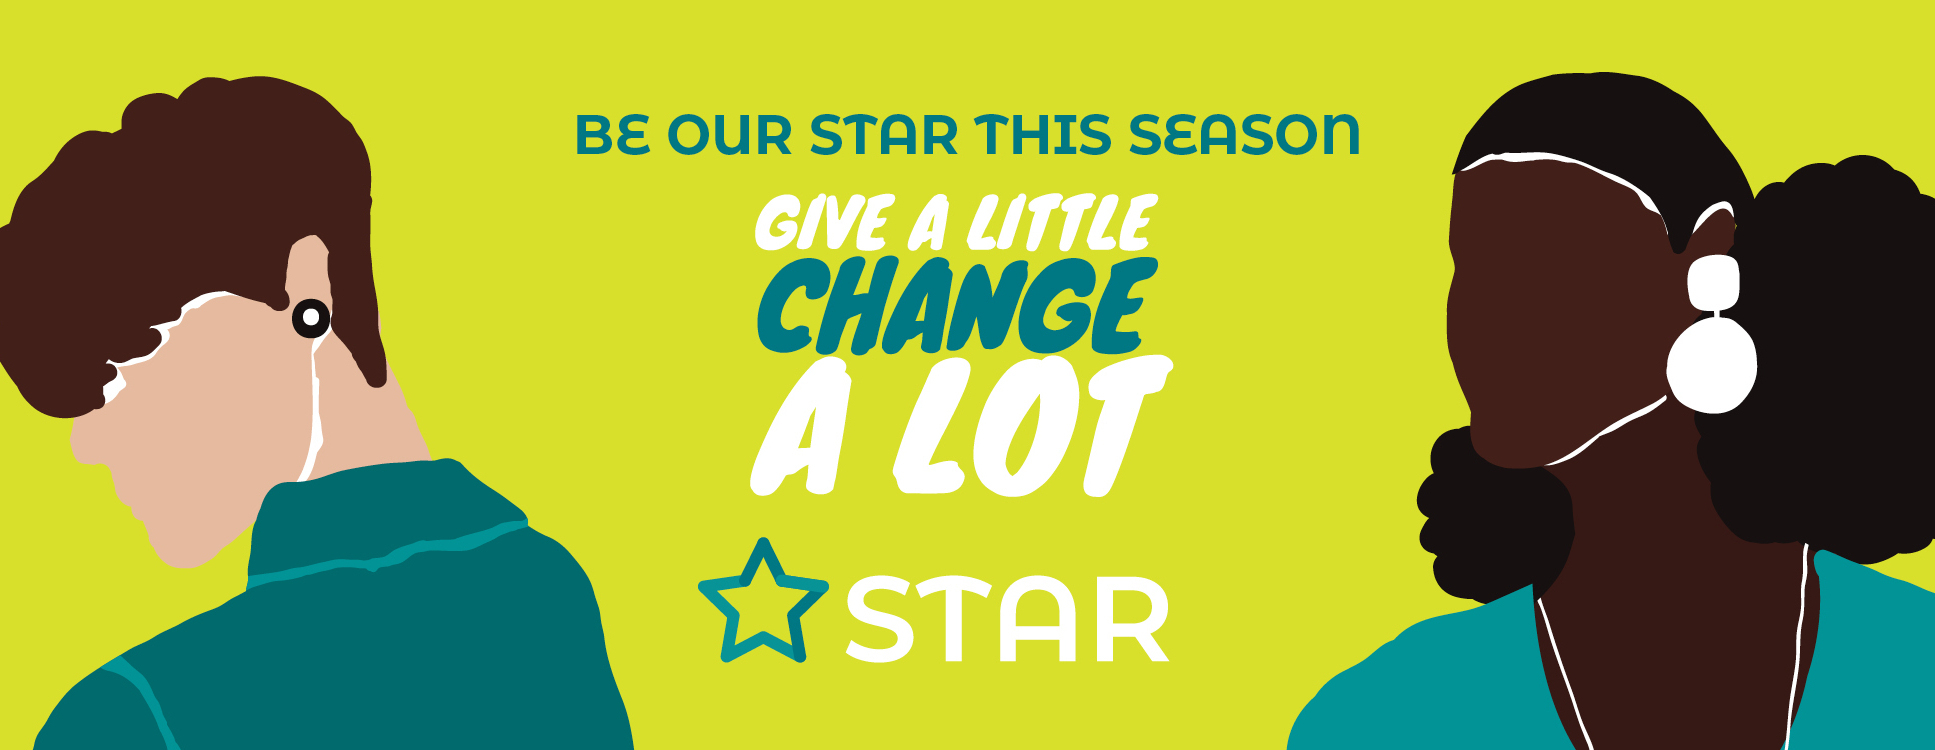 Be our STAR:  Give a little, change a lot.